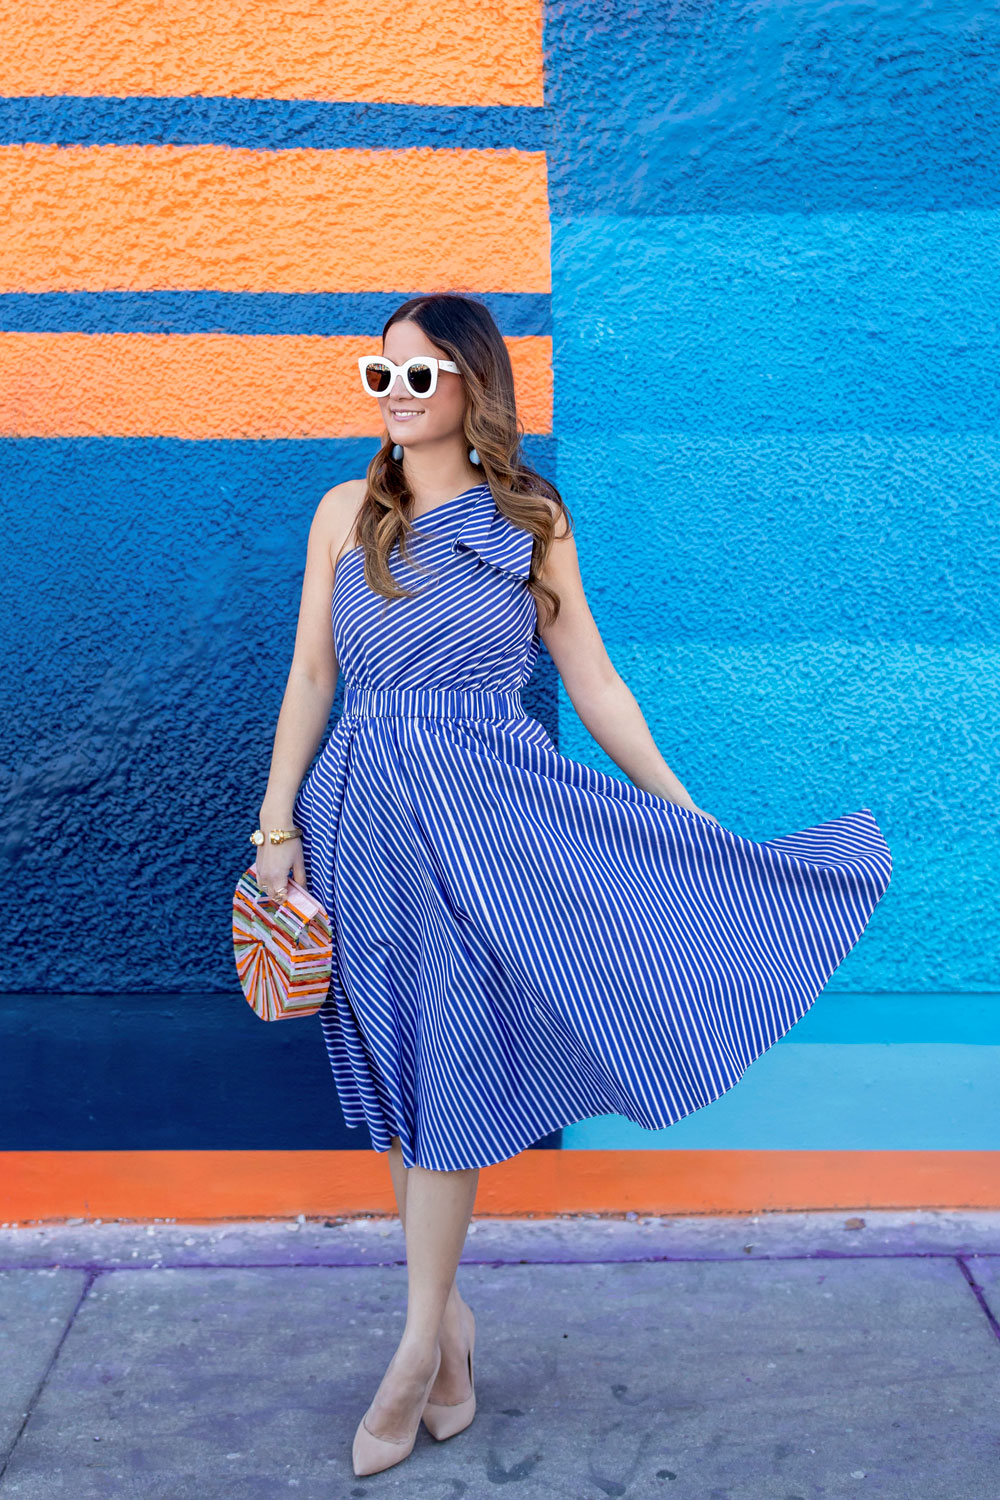 One Shoulder Blue Stripe Fit Flare Dress At Wynwood Walls